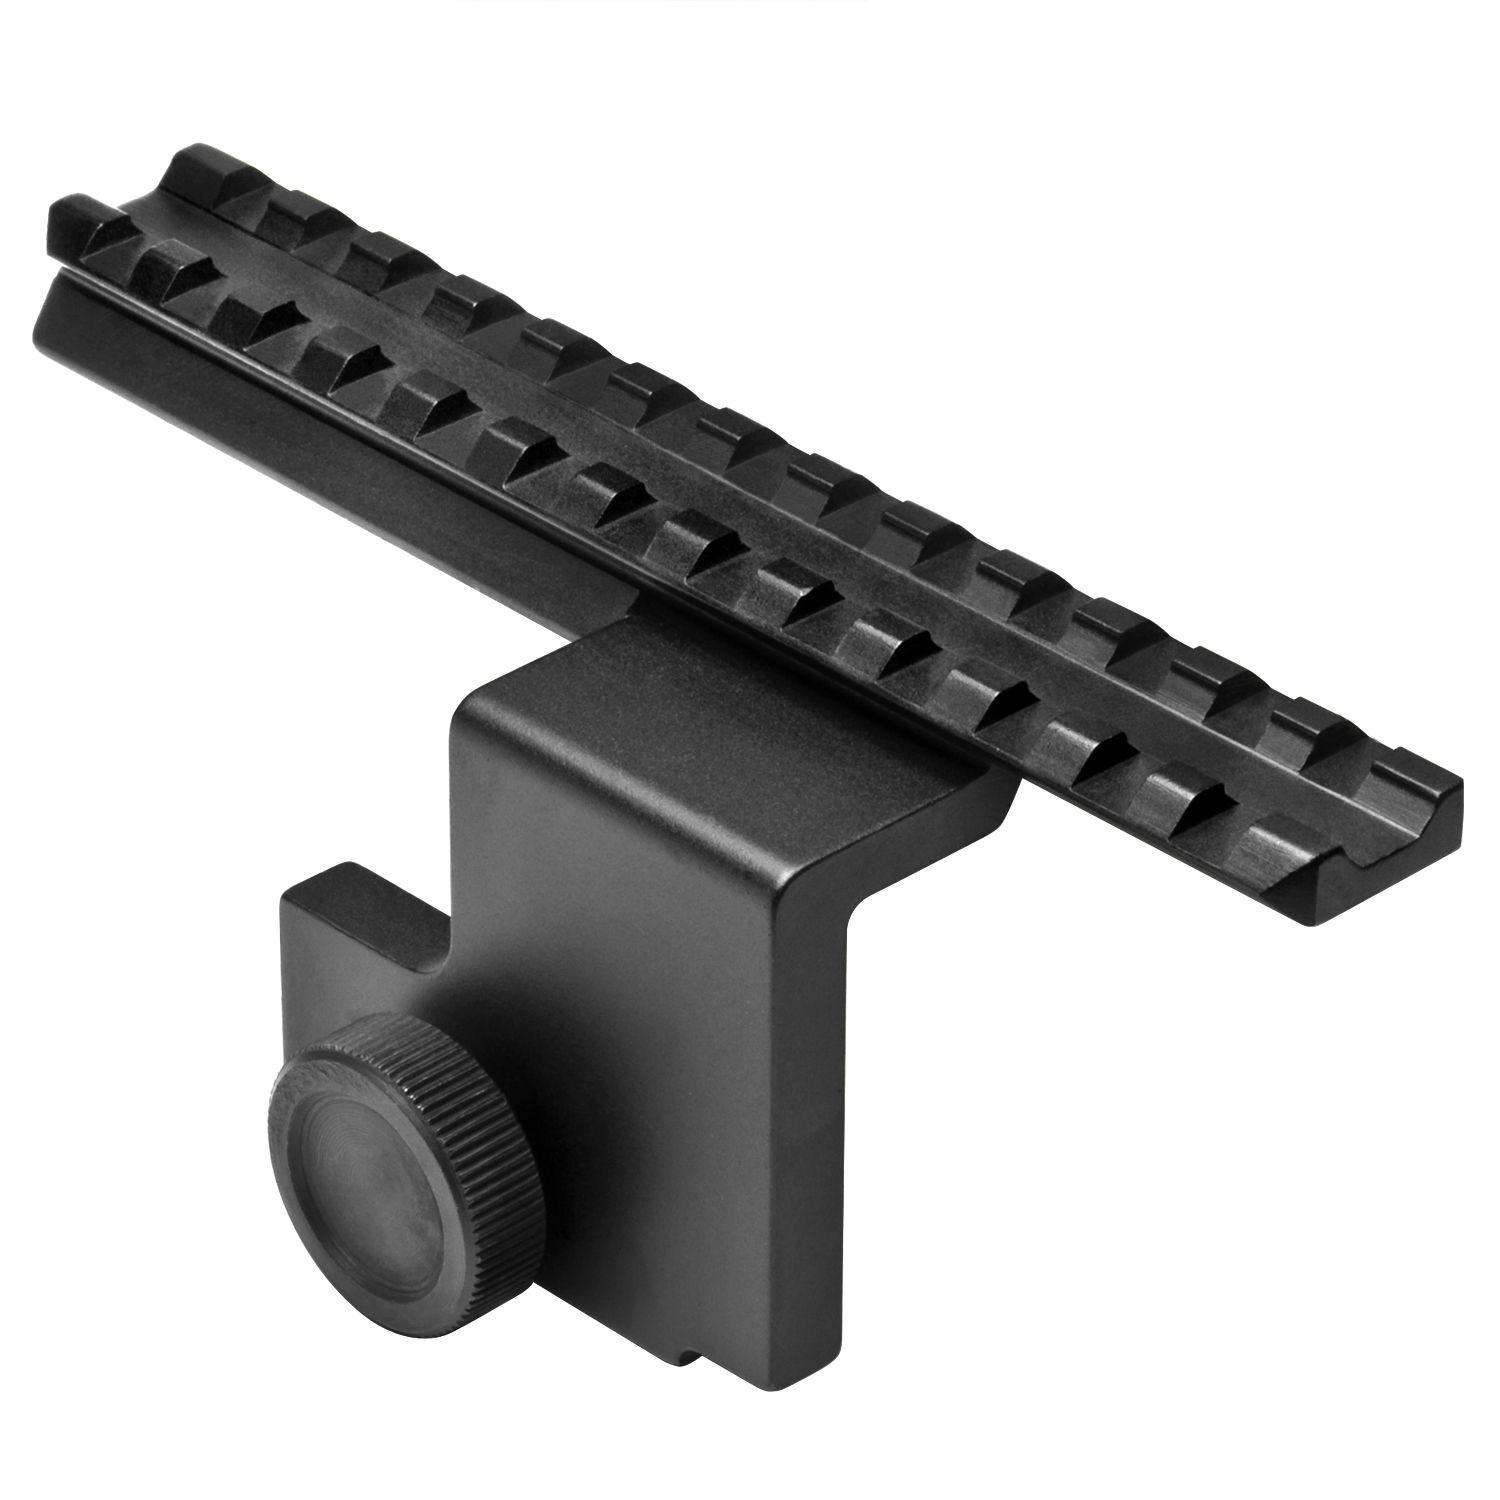 Ncstar Mini 14 Scope Black Side Mount Weaver